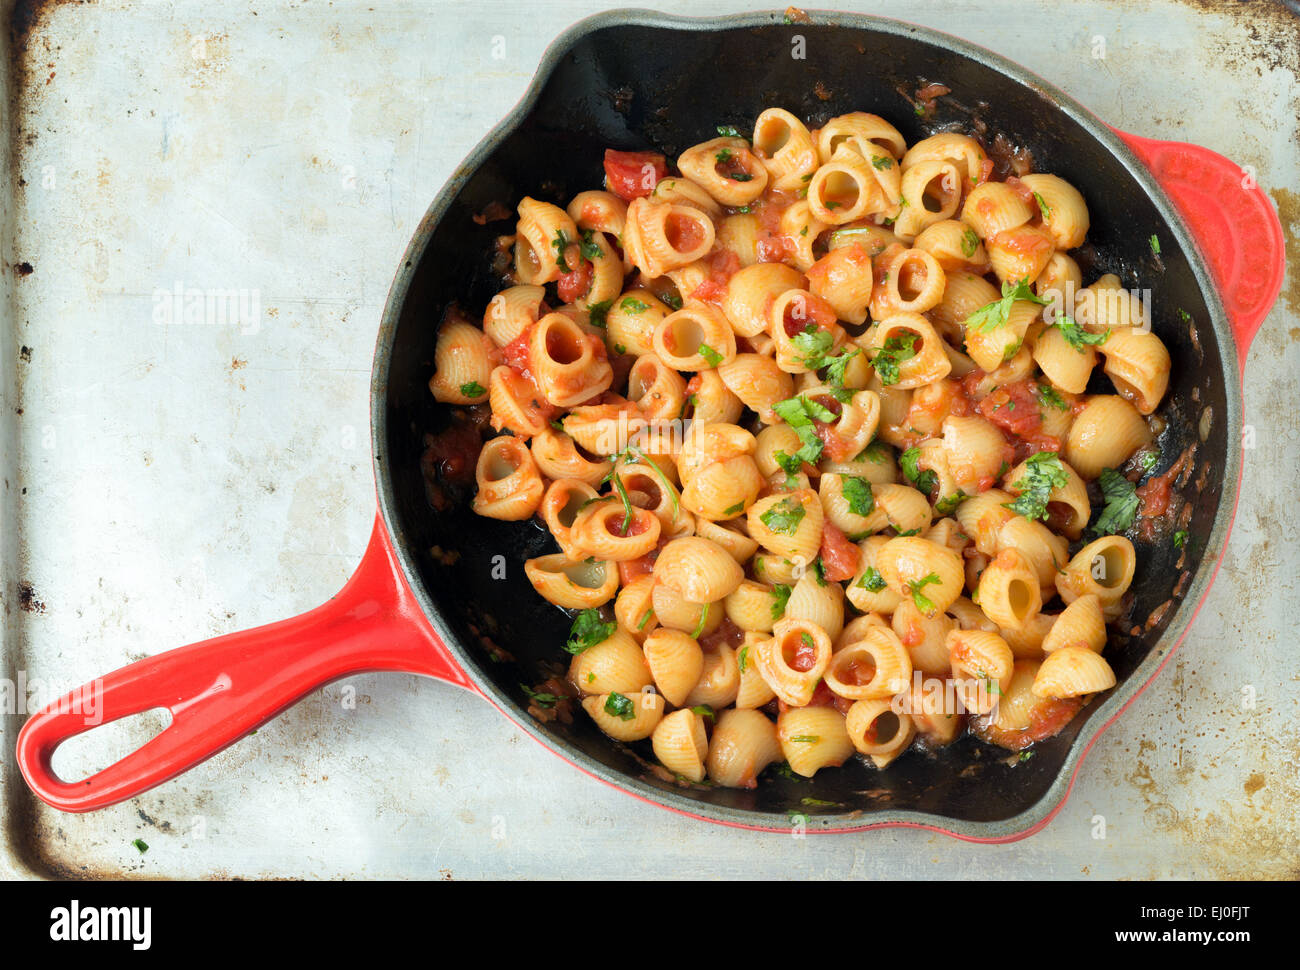 Gomiti elbow pasta shells in arrabbiata tomato, garlic and chili sauce, garnished with chopped parsley, cooking - Stock Image